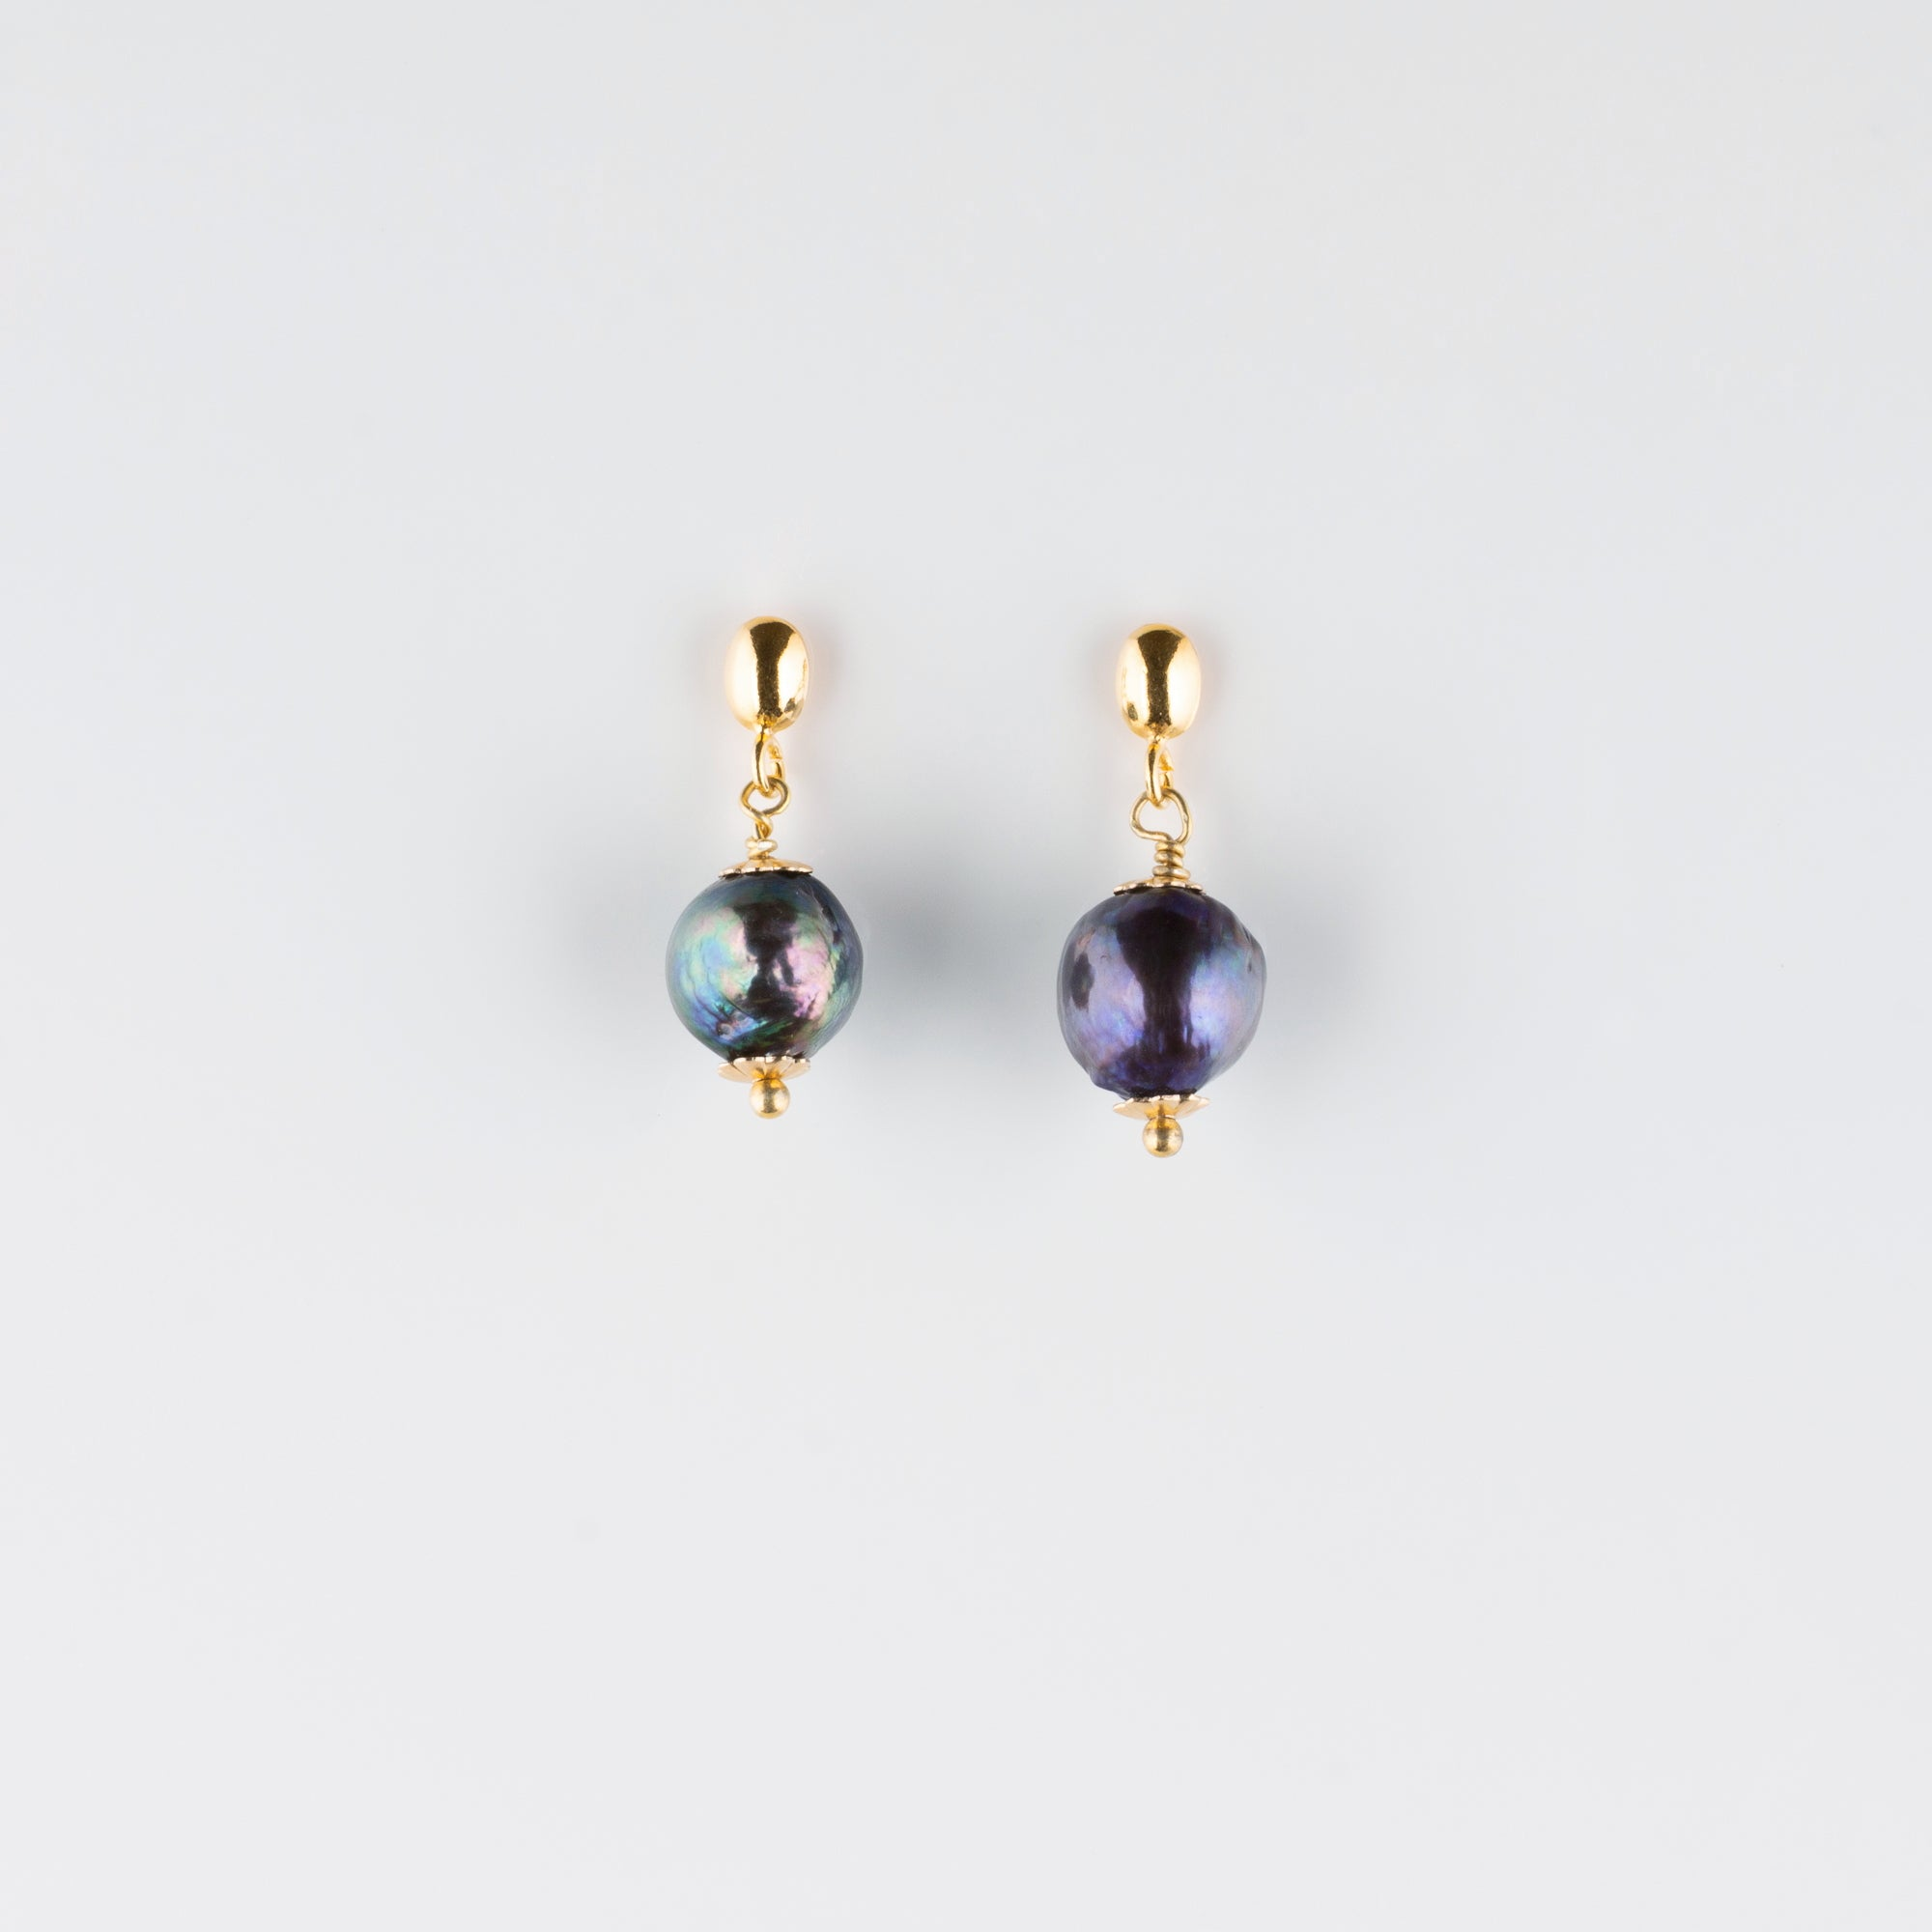 VERMEIL POST EARRINGS // BLACK PEARL